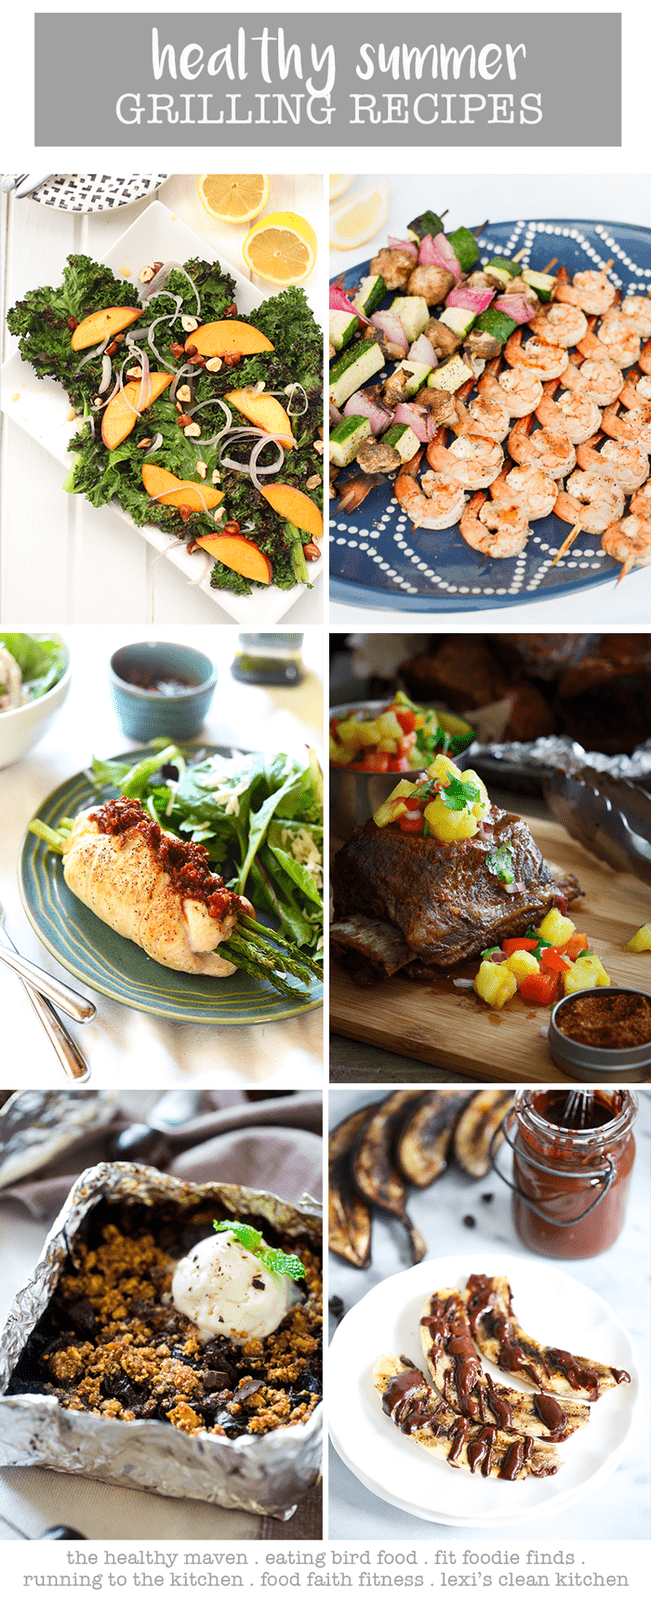 Healthy Summer Grilling Recipes